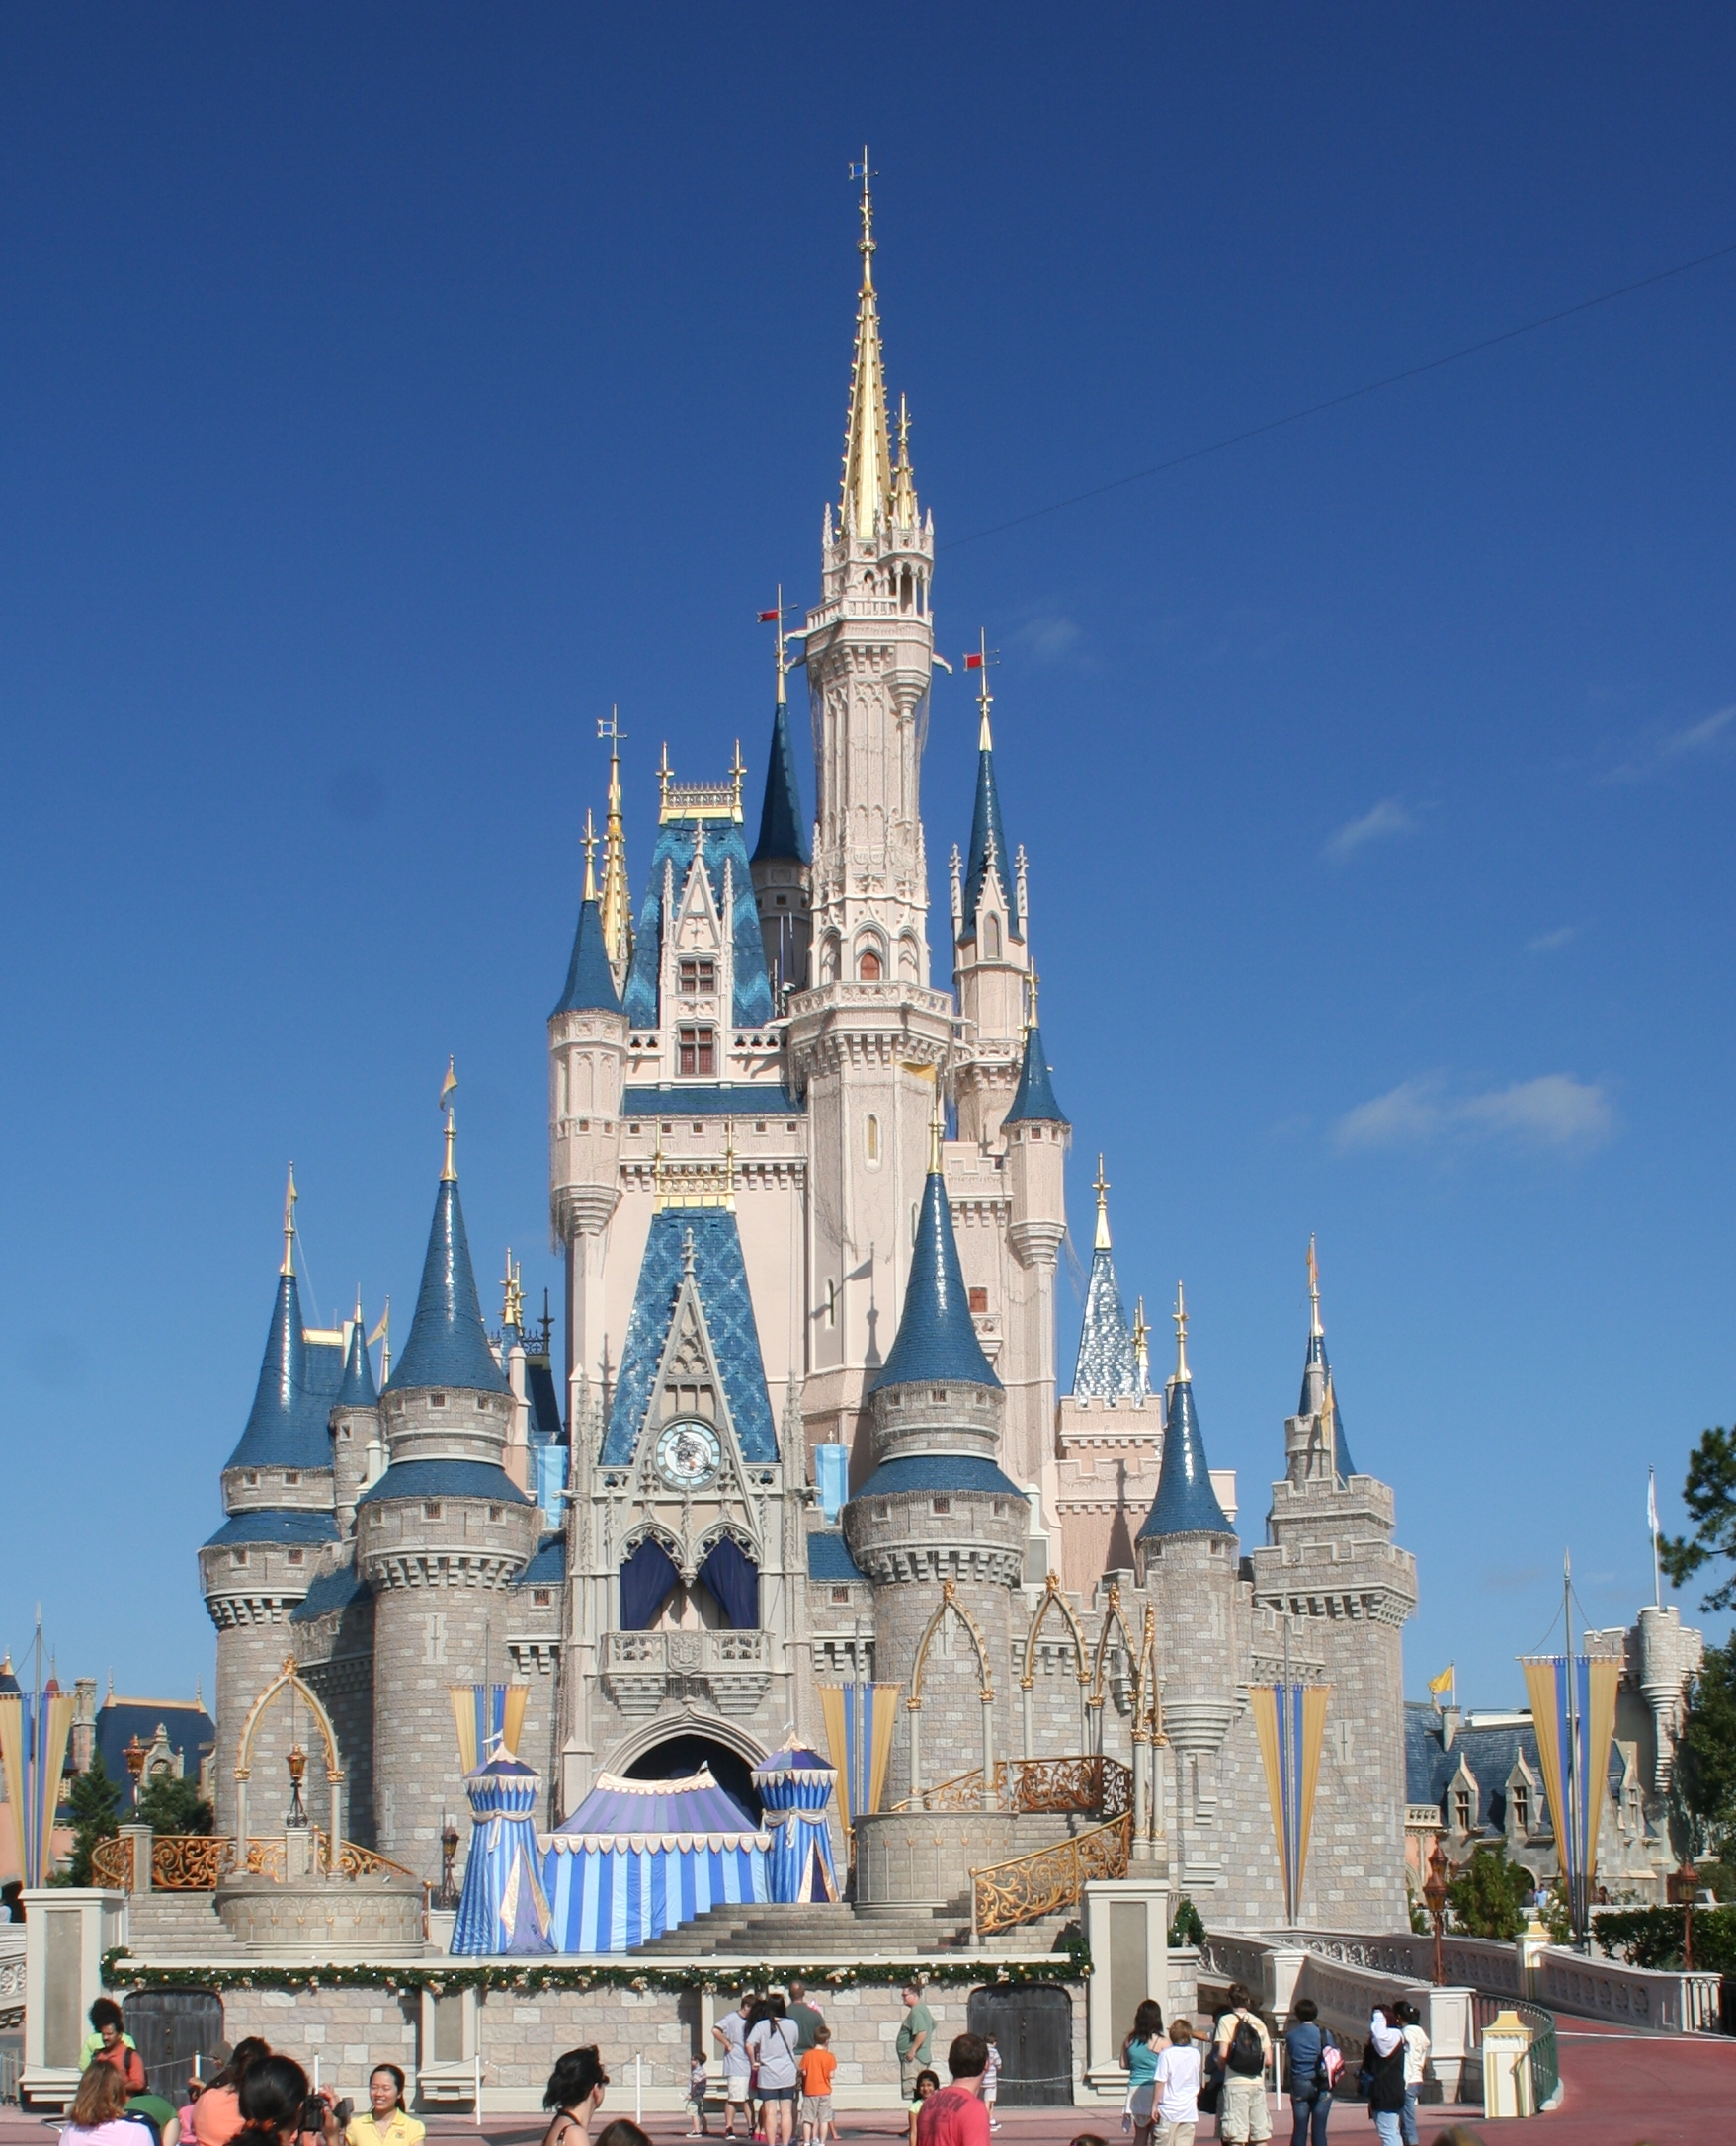 Filecinderella castle at magic kingdom walt disney world resort in florida jpg